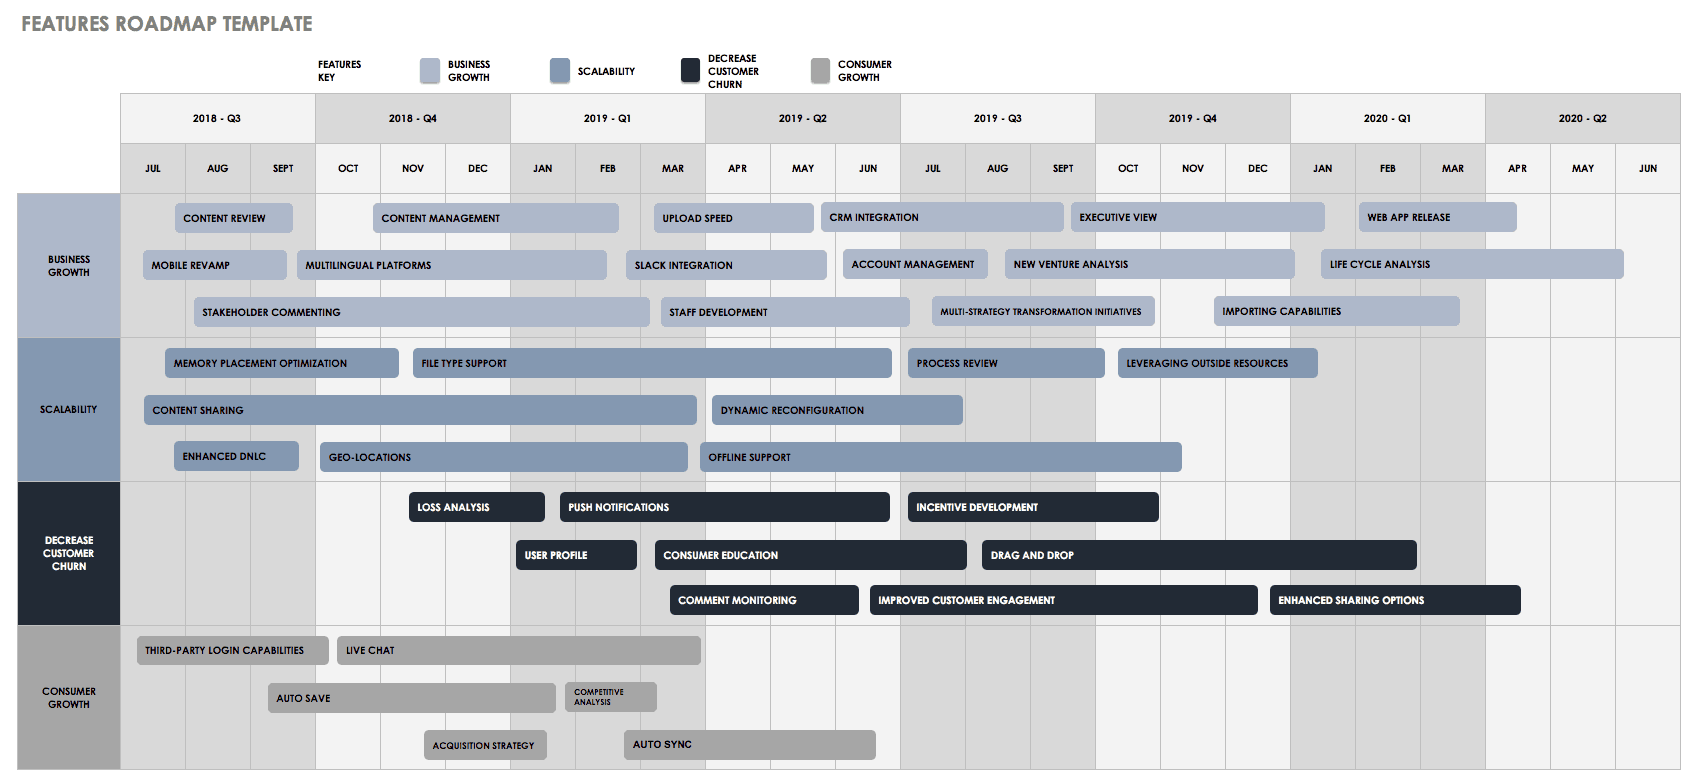 free product roadmap templates - Free Roadmap Template